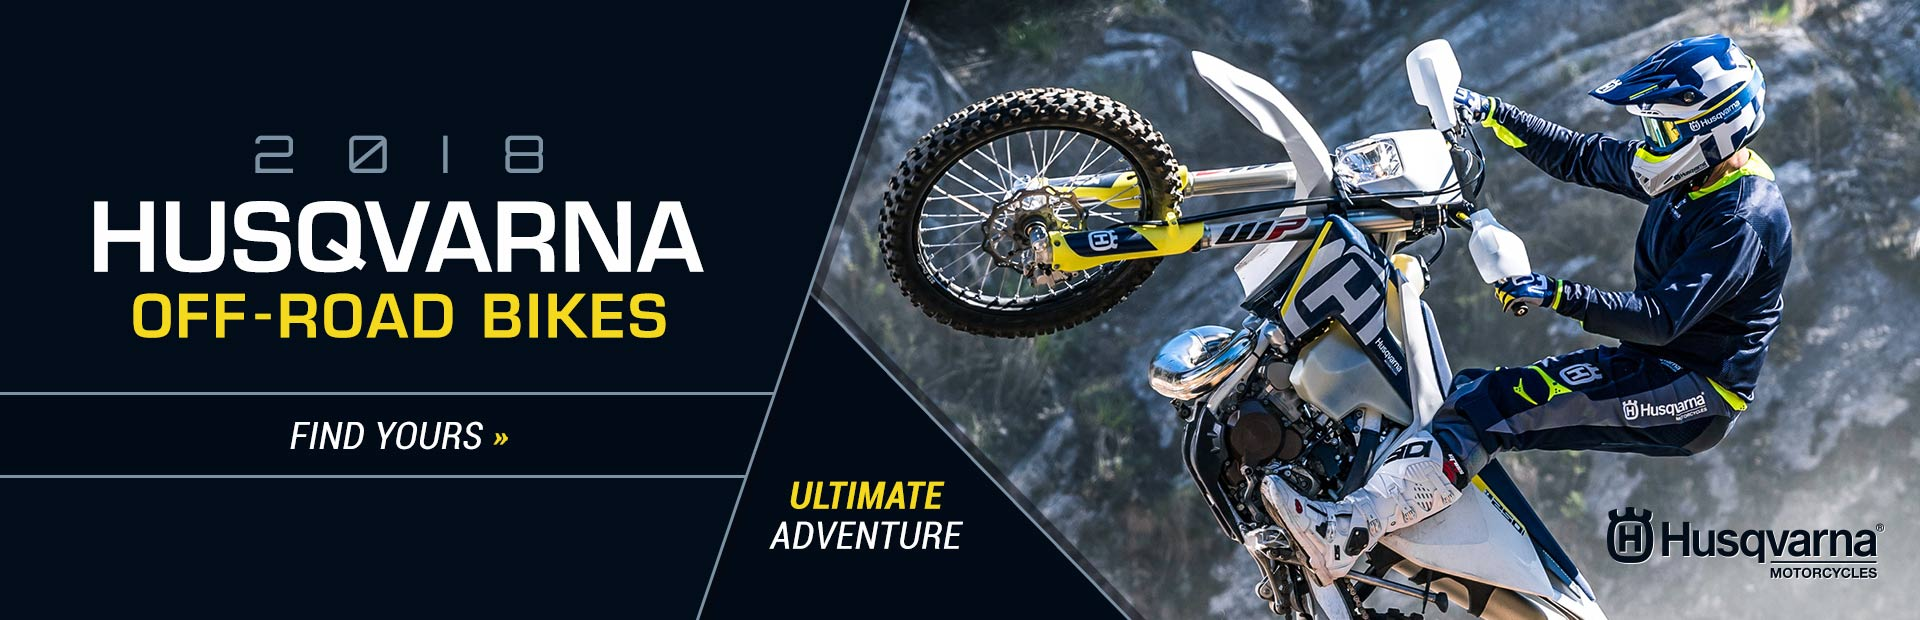 2018 Husqvarna Off-Road Bikes: Click here to view the lineup.